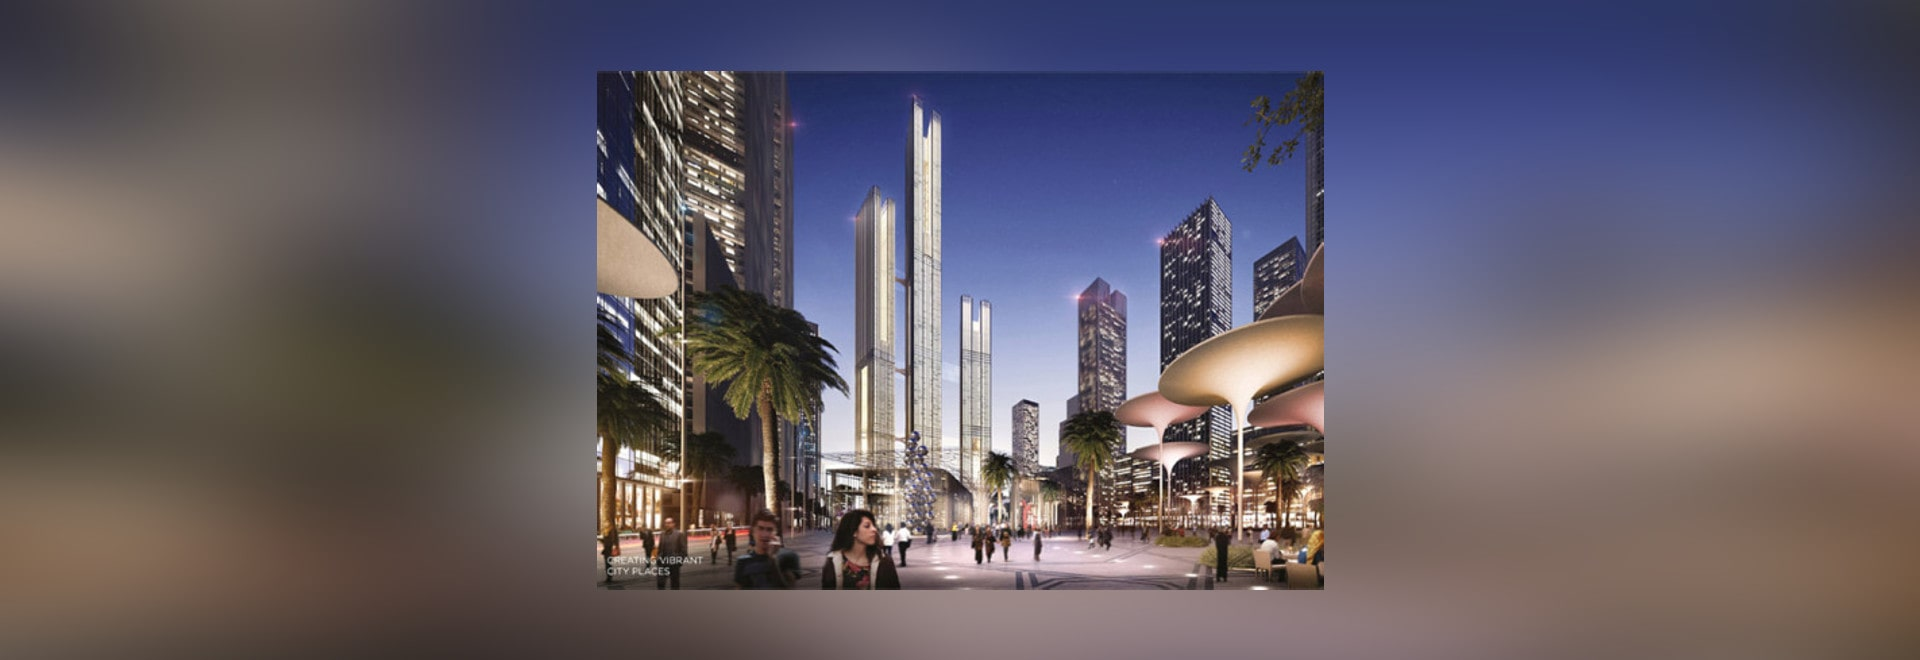 SOM reveals design for new sustainable capital city in Egypt